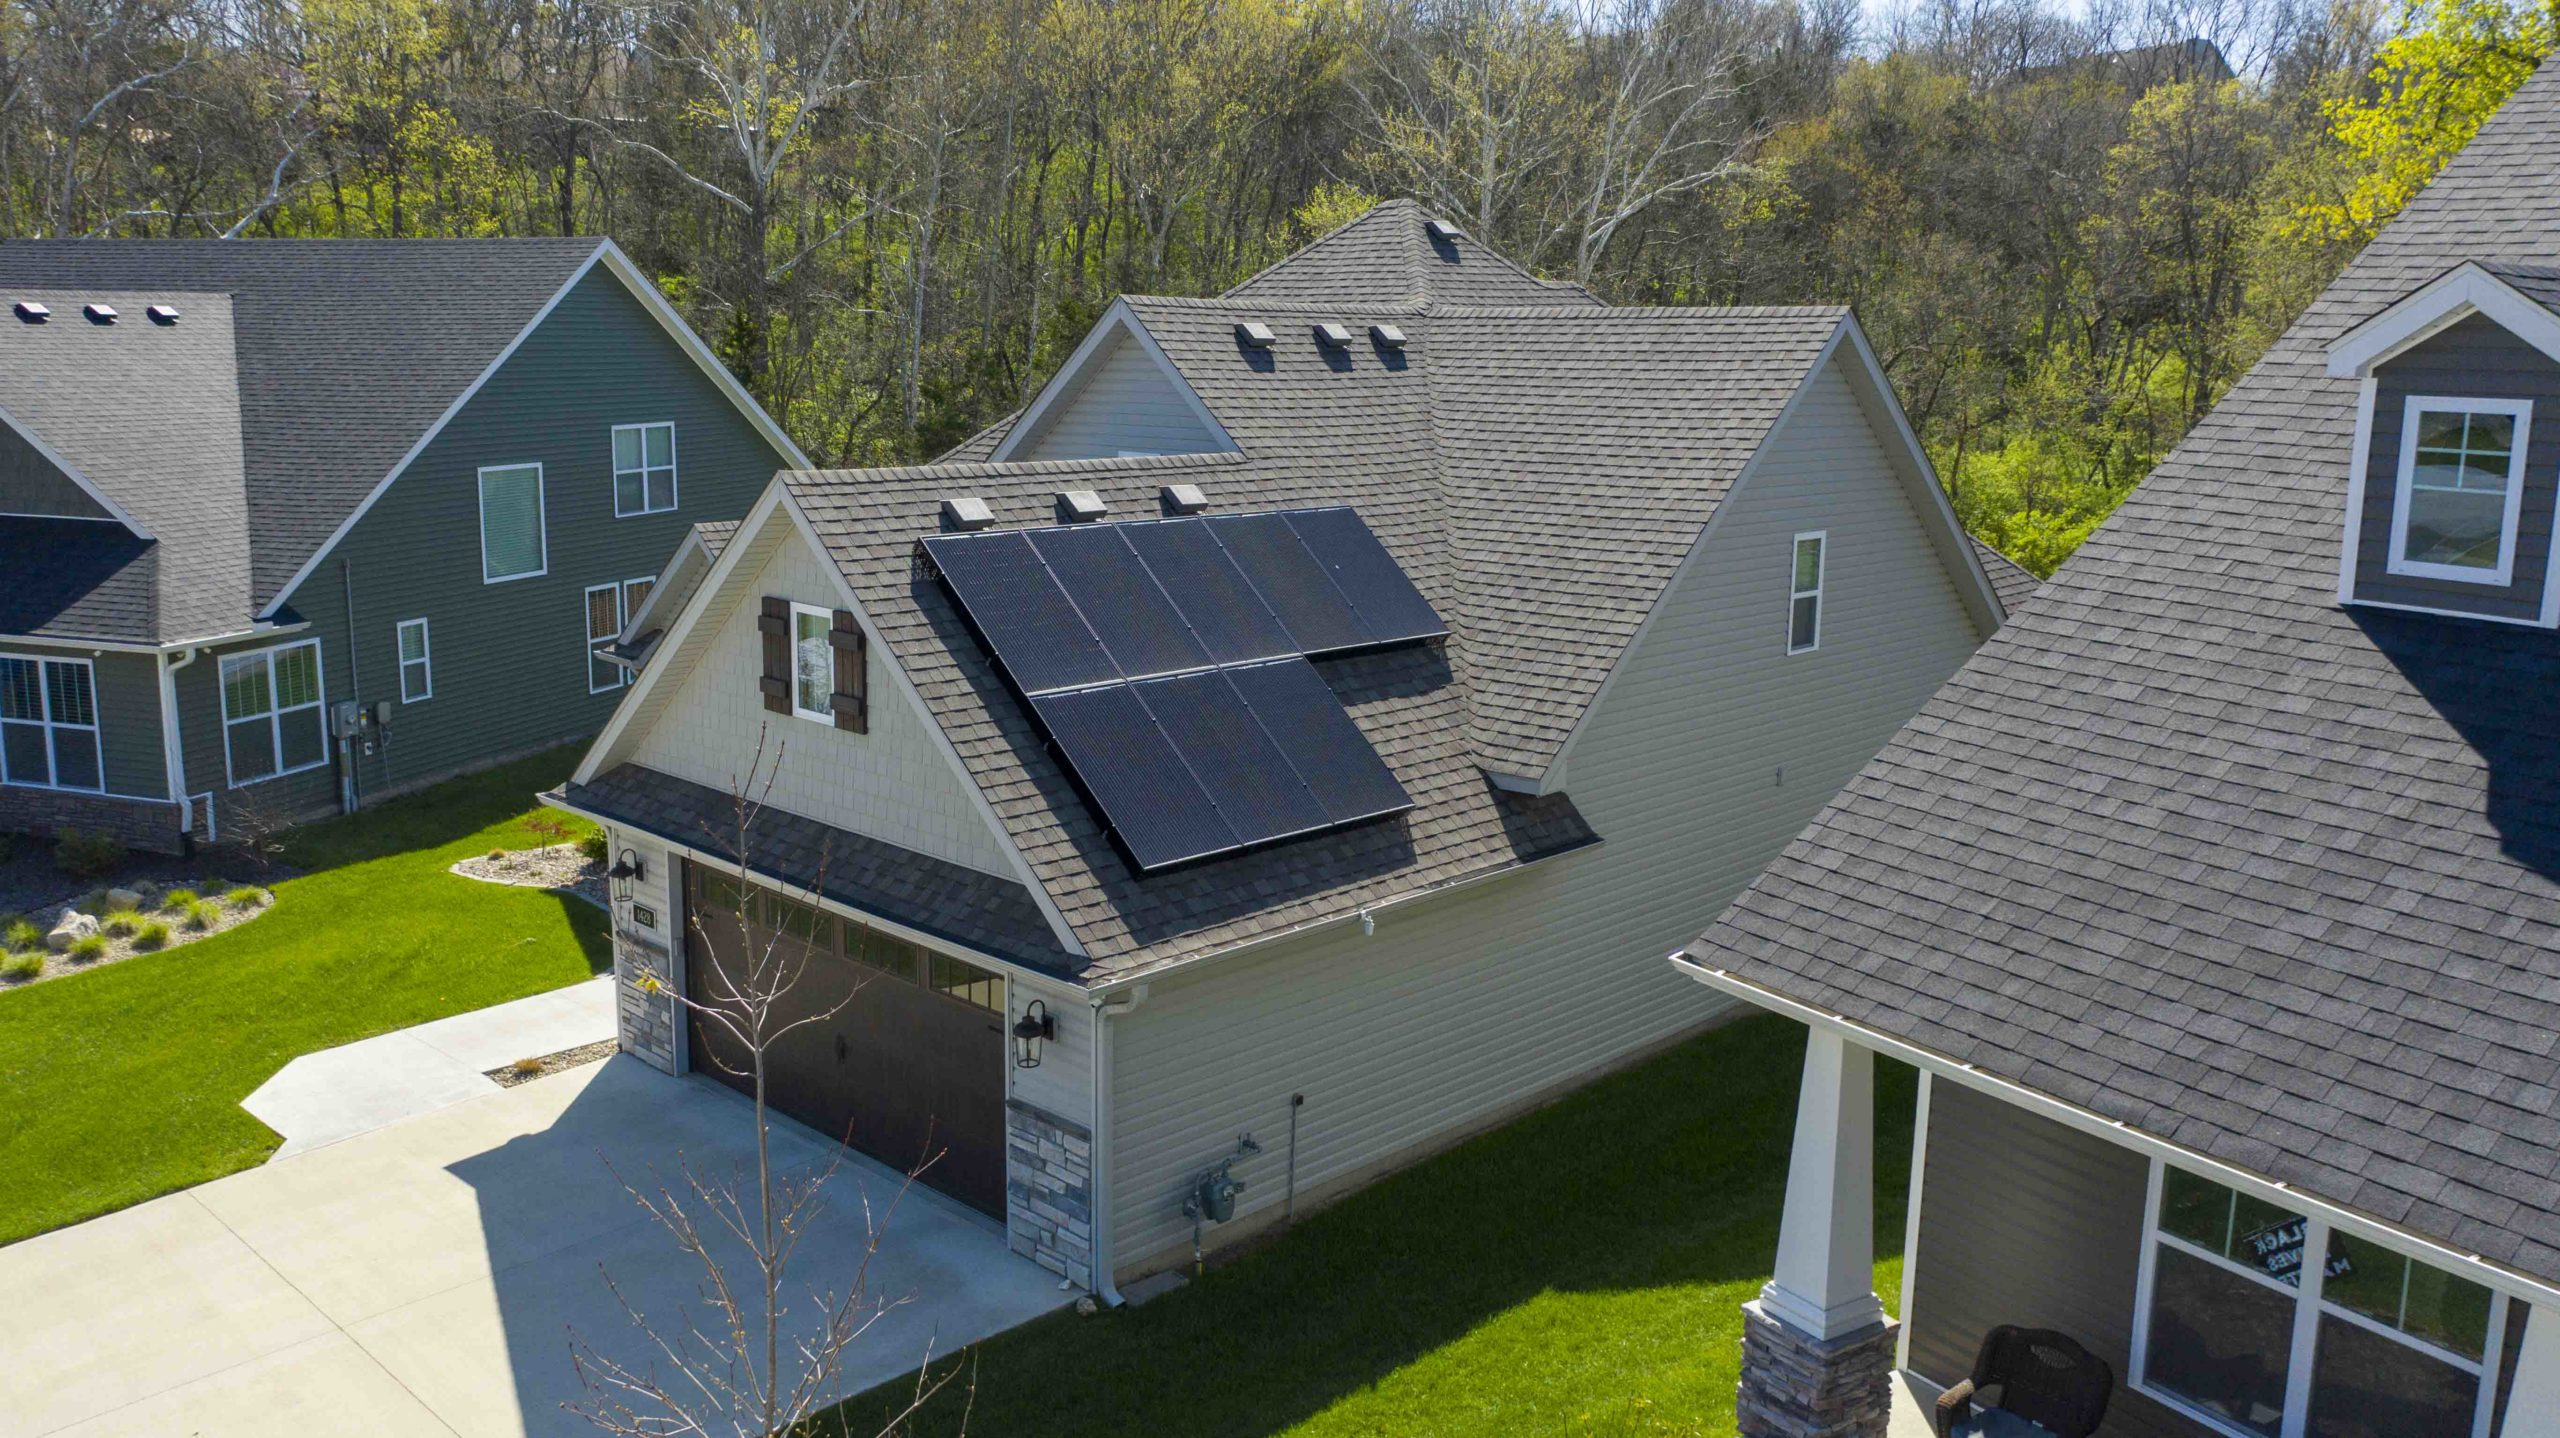 A bird's eye view of these residential solar panels showcase the clean lines and unobstructed view.